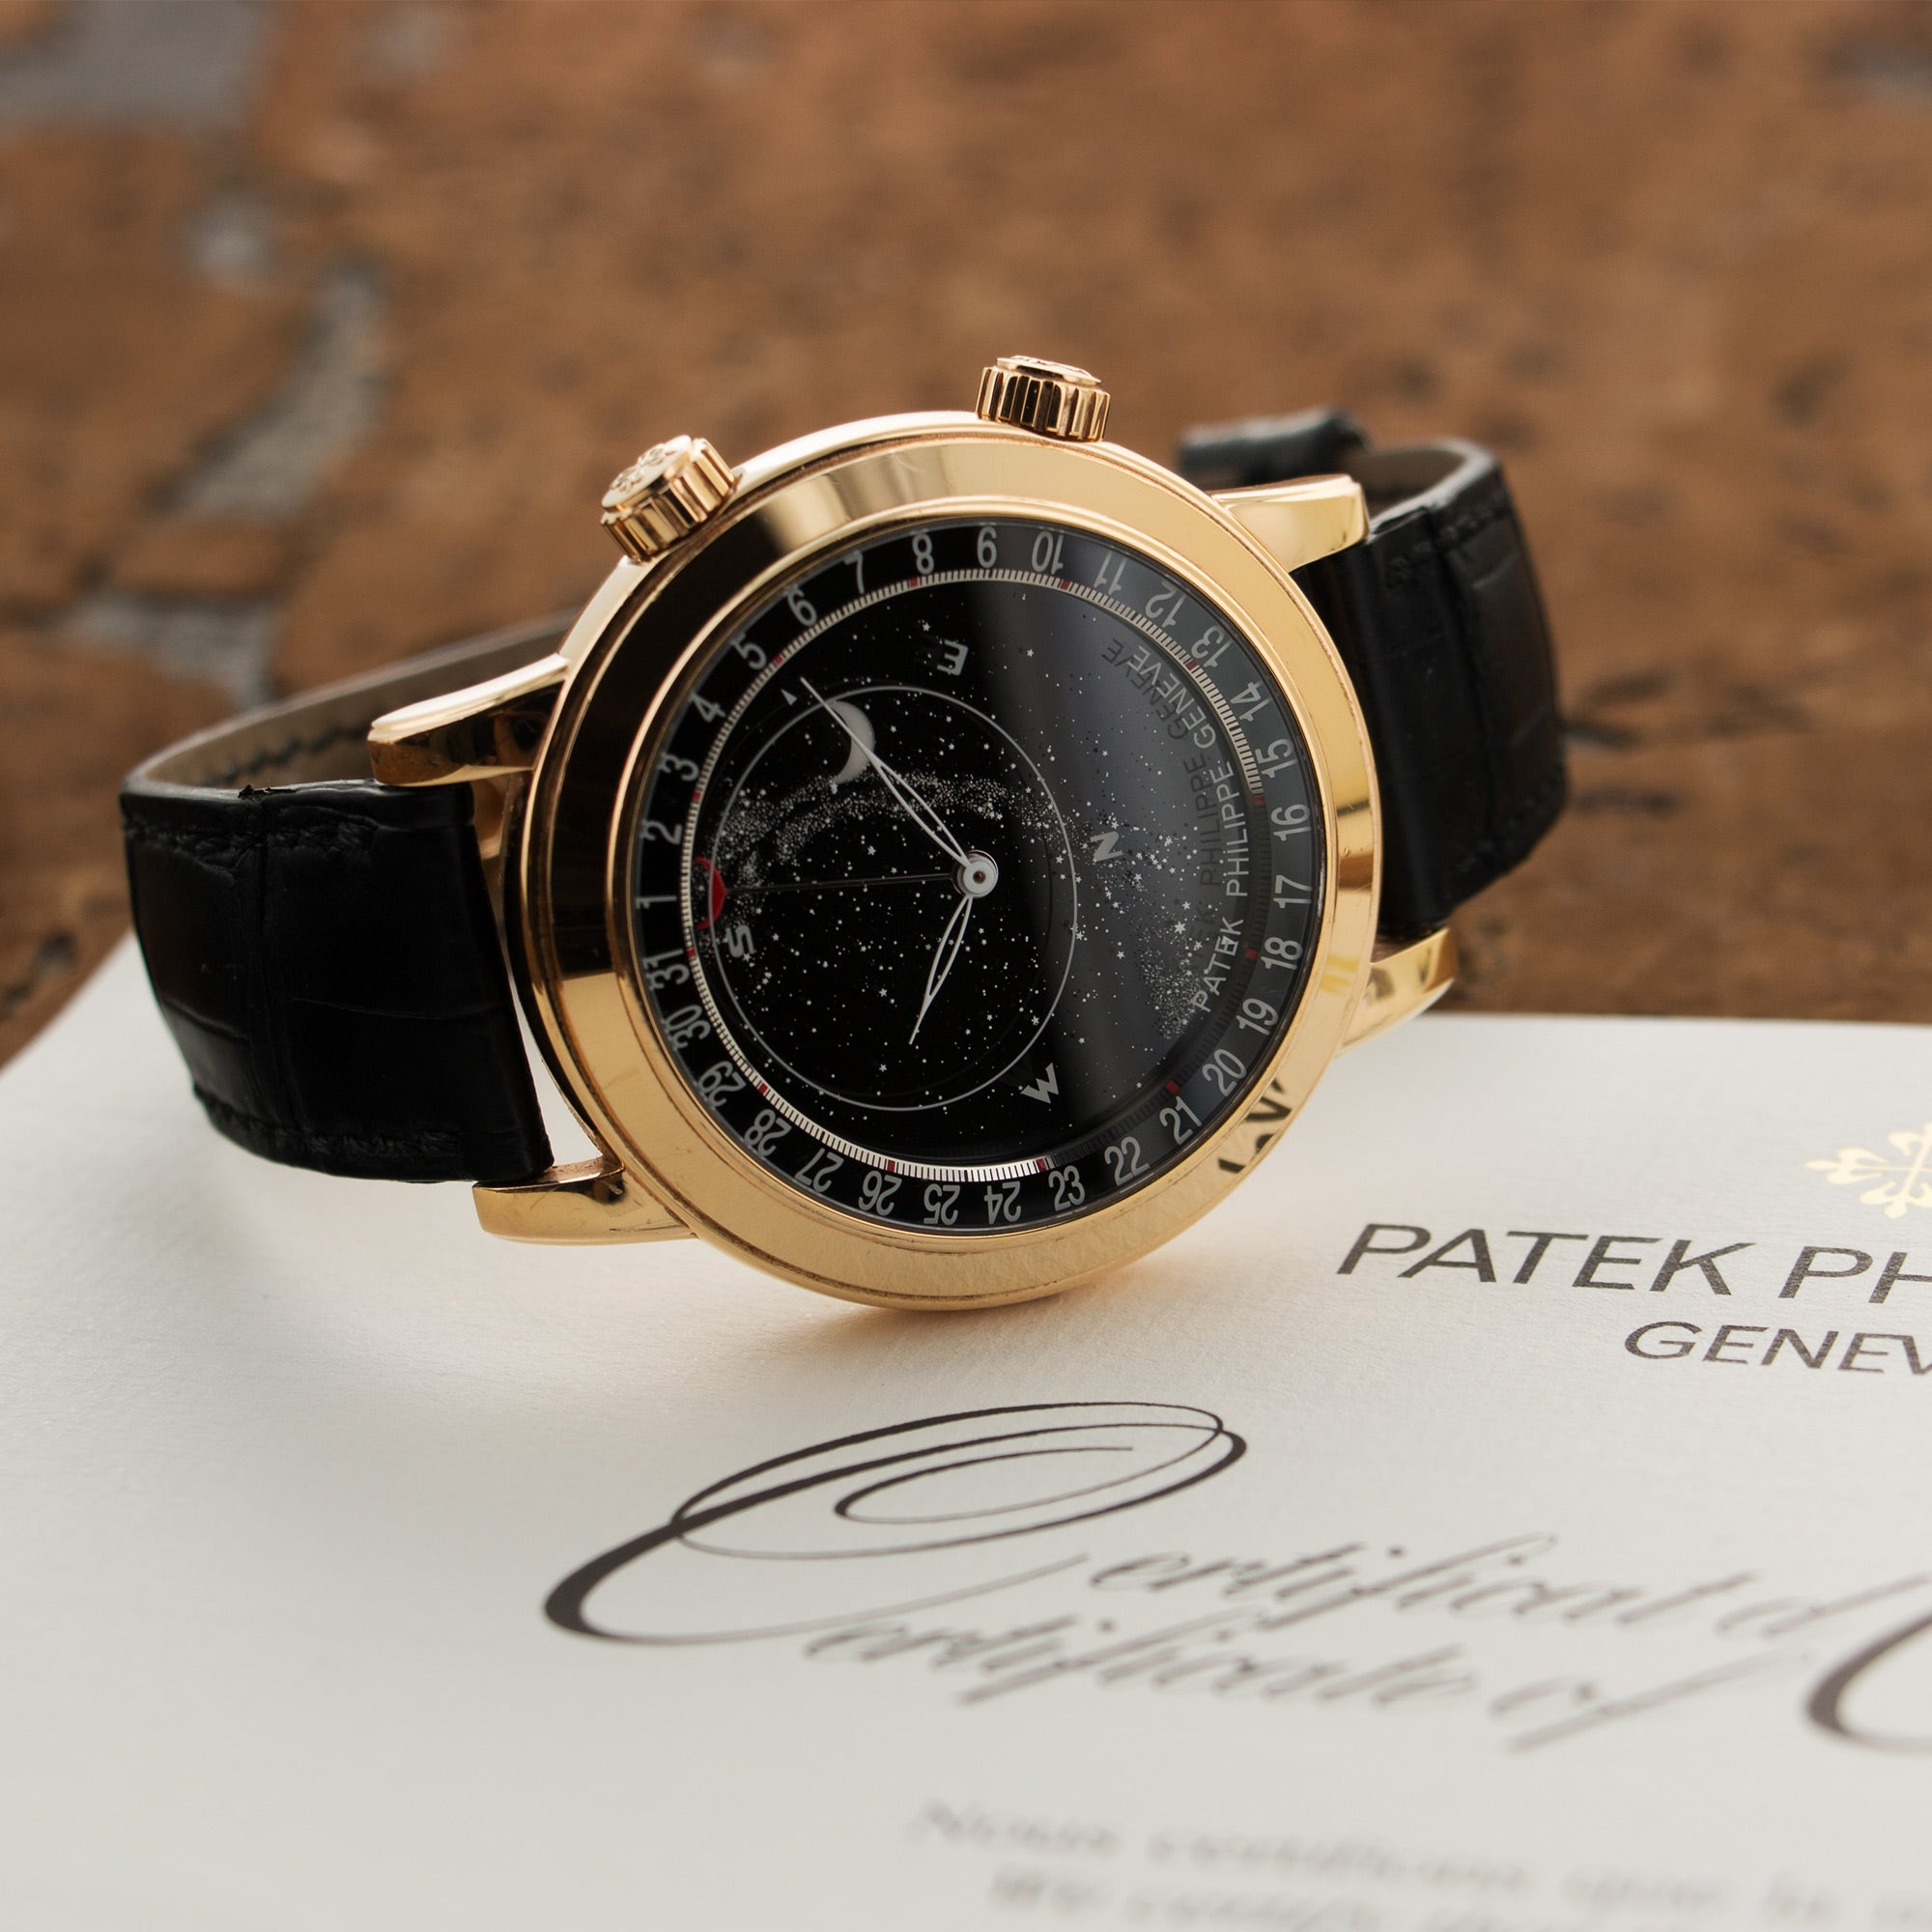 Patek Philippe Celestial 6102R 18k RG  Excellent Gents 18k RG Black 44mm Automatic 2016 Black Crocodile Original Box and Certificate